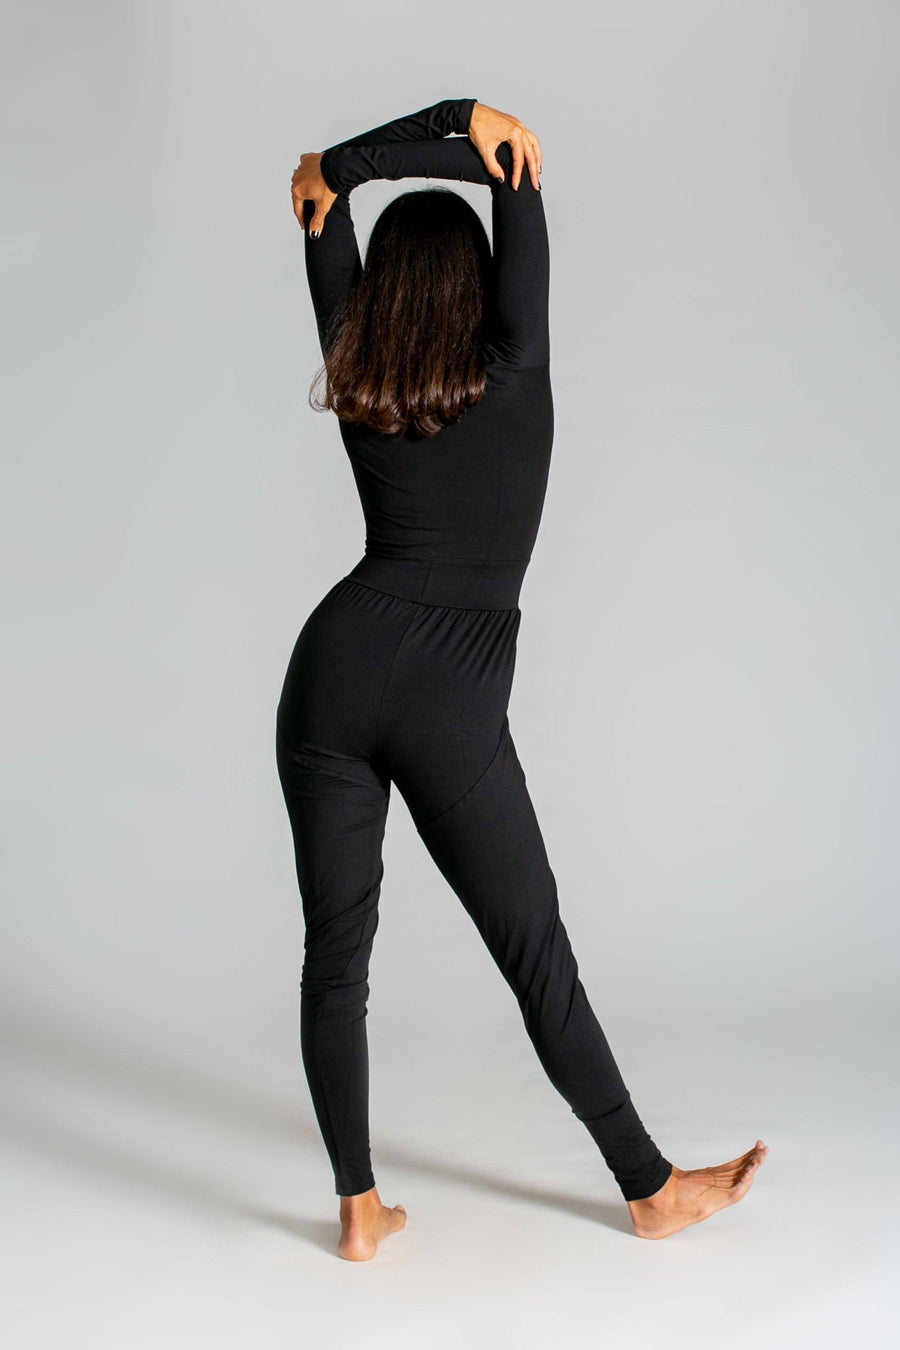 Long Sleeve Yoga Jumpsuit womens clothing rippleyogawear black S